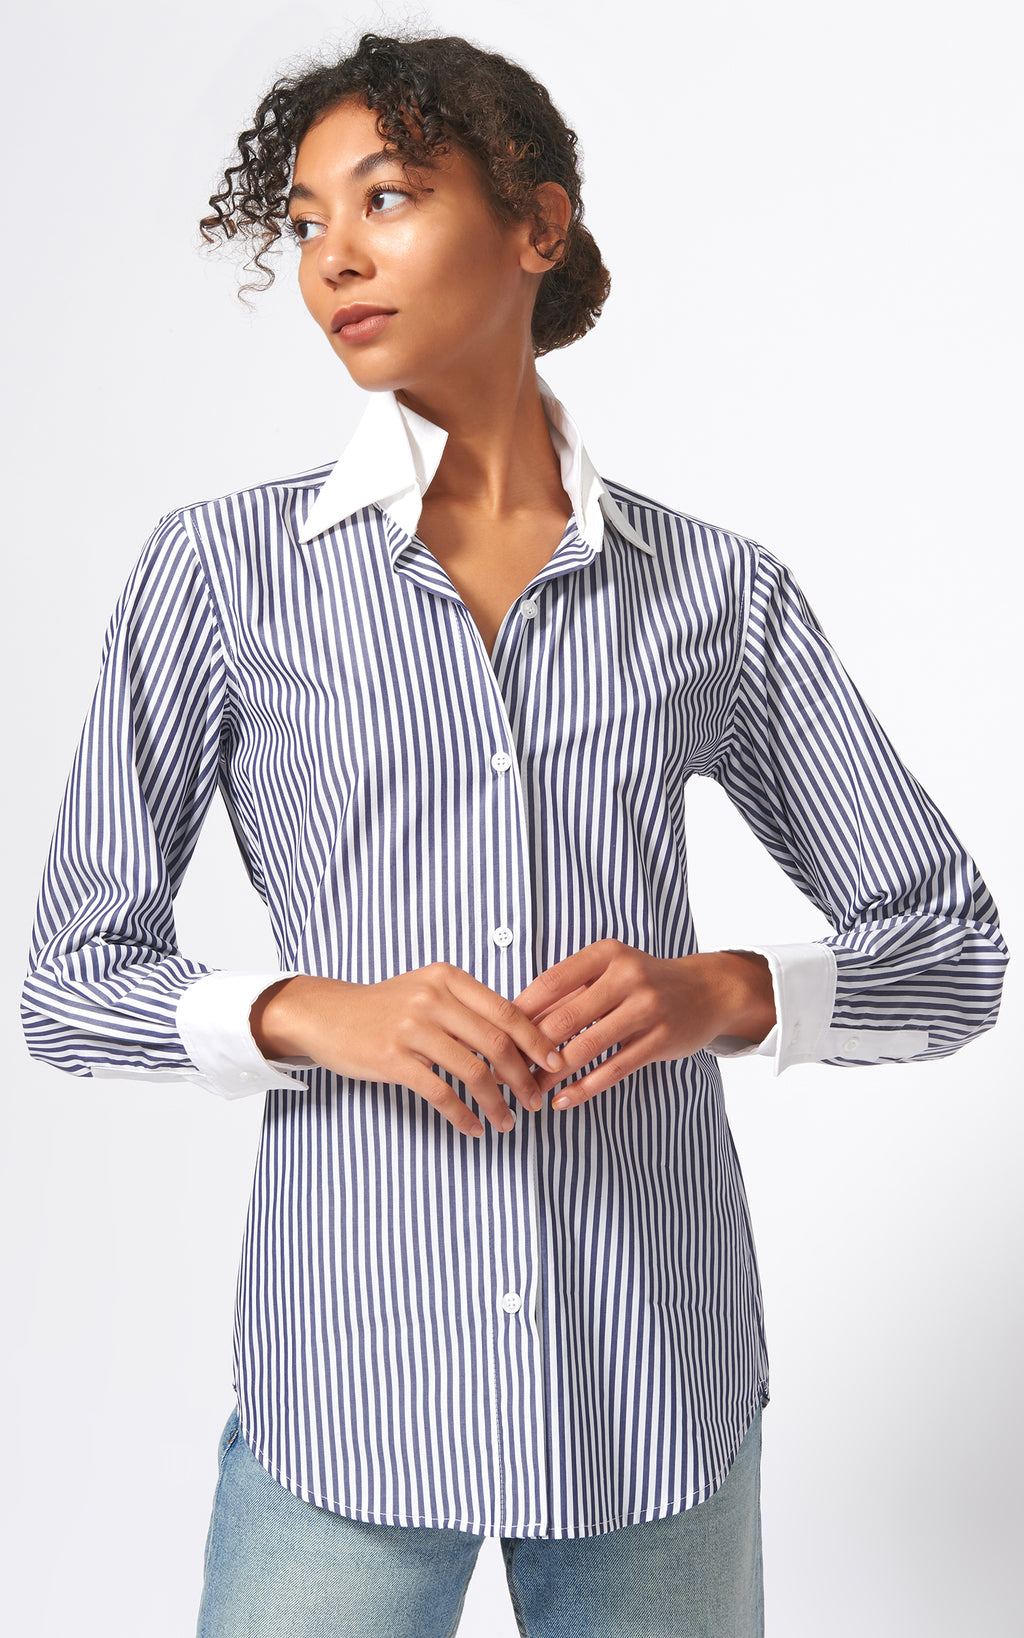 DOUBLE COLLAR SHIRT - CLASSIC STRIPE